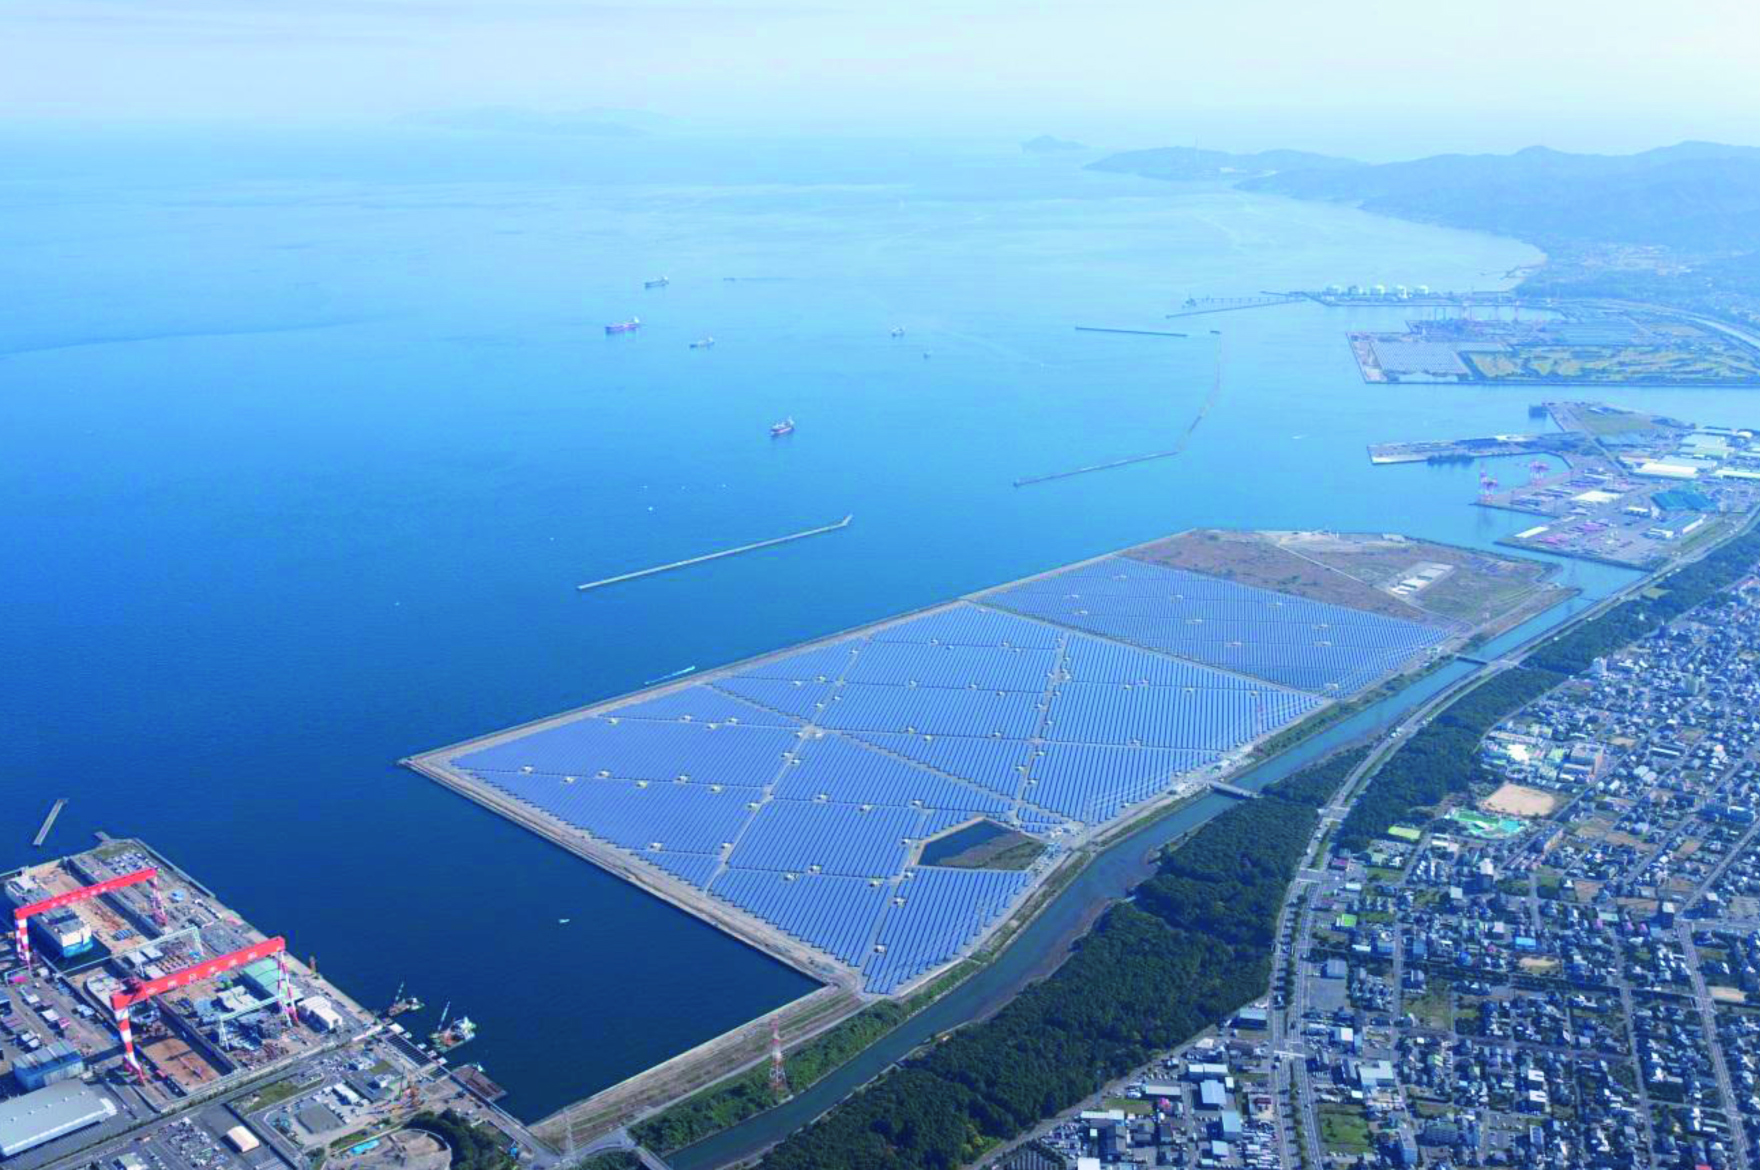 In terms of expanding its renewable energy generation business, Marubeni plans to boost the power generated by renewable sources from its own net power supply from 10% to 20% by 2023. Image: Marubeni